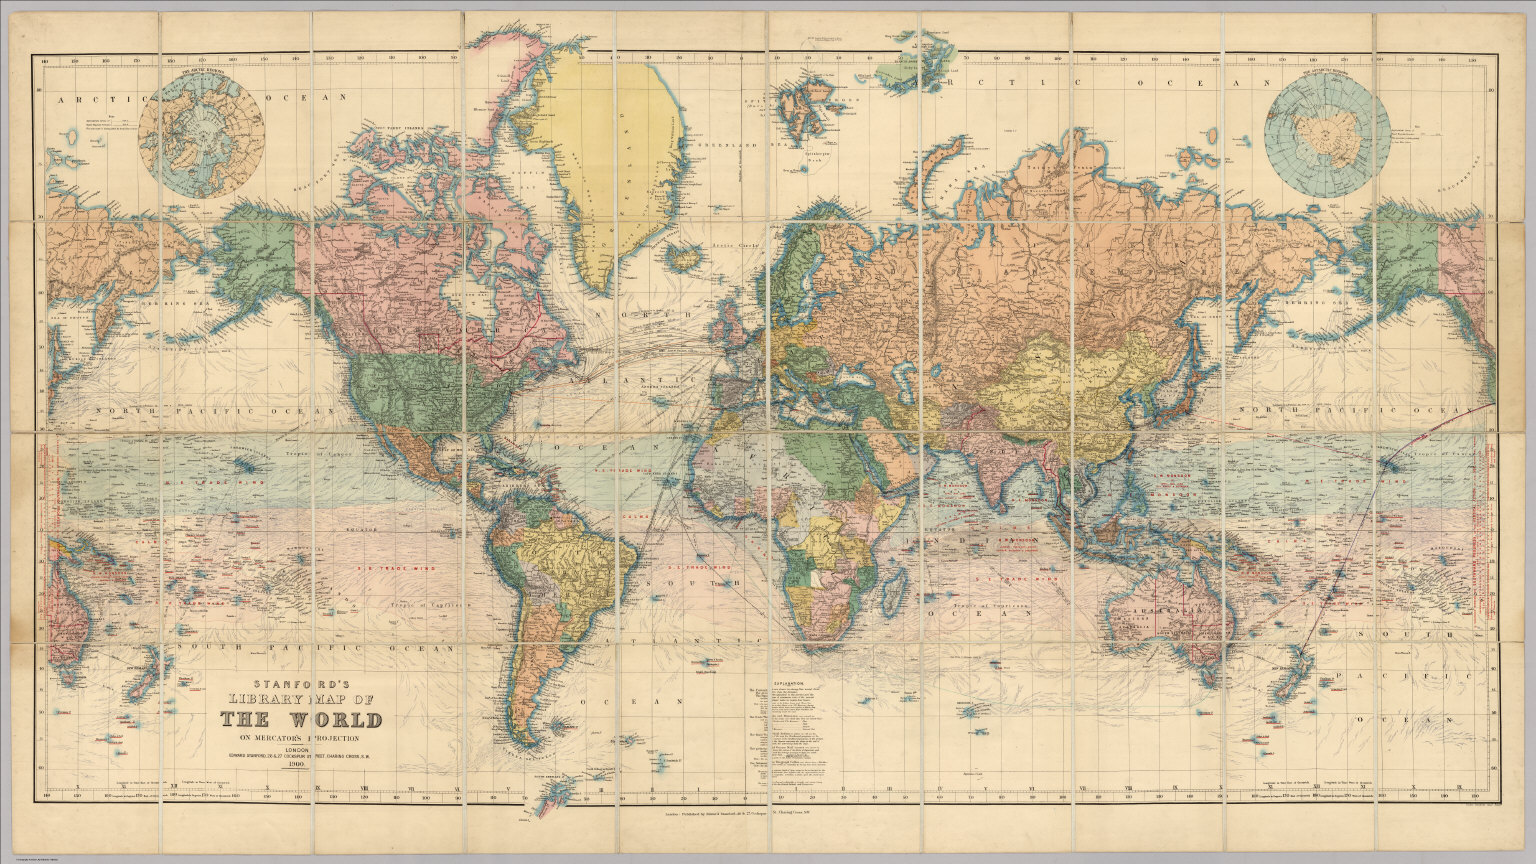 Download 91,000 Historic Maps from the Massive David Rumsey Map ...